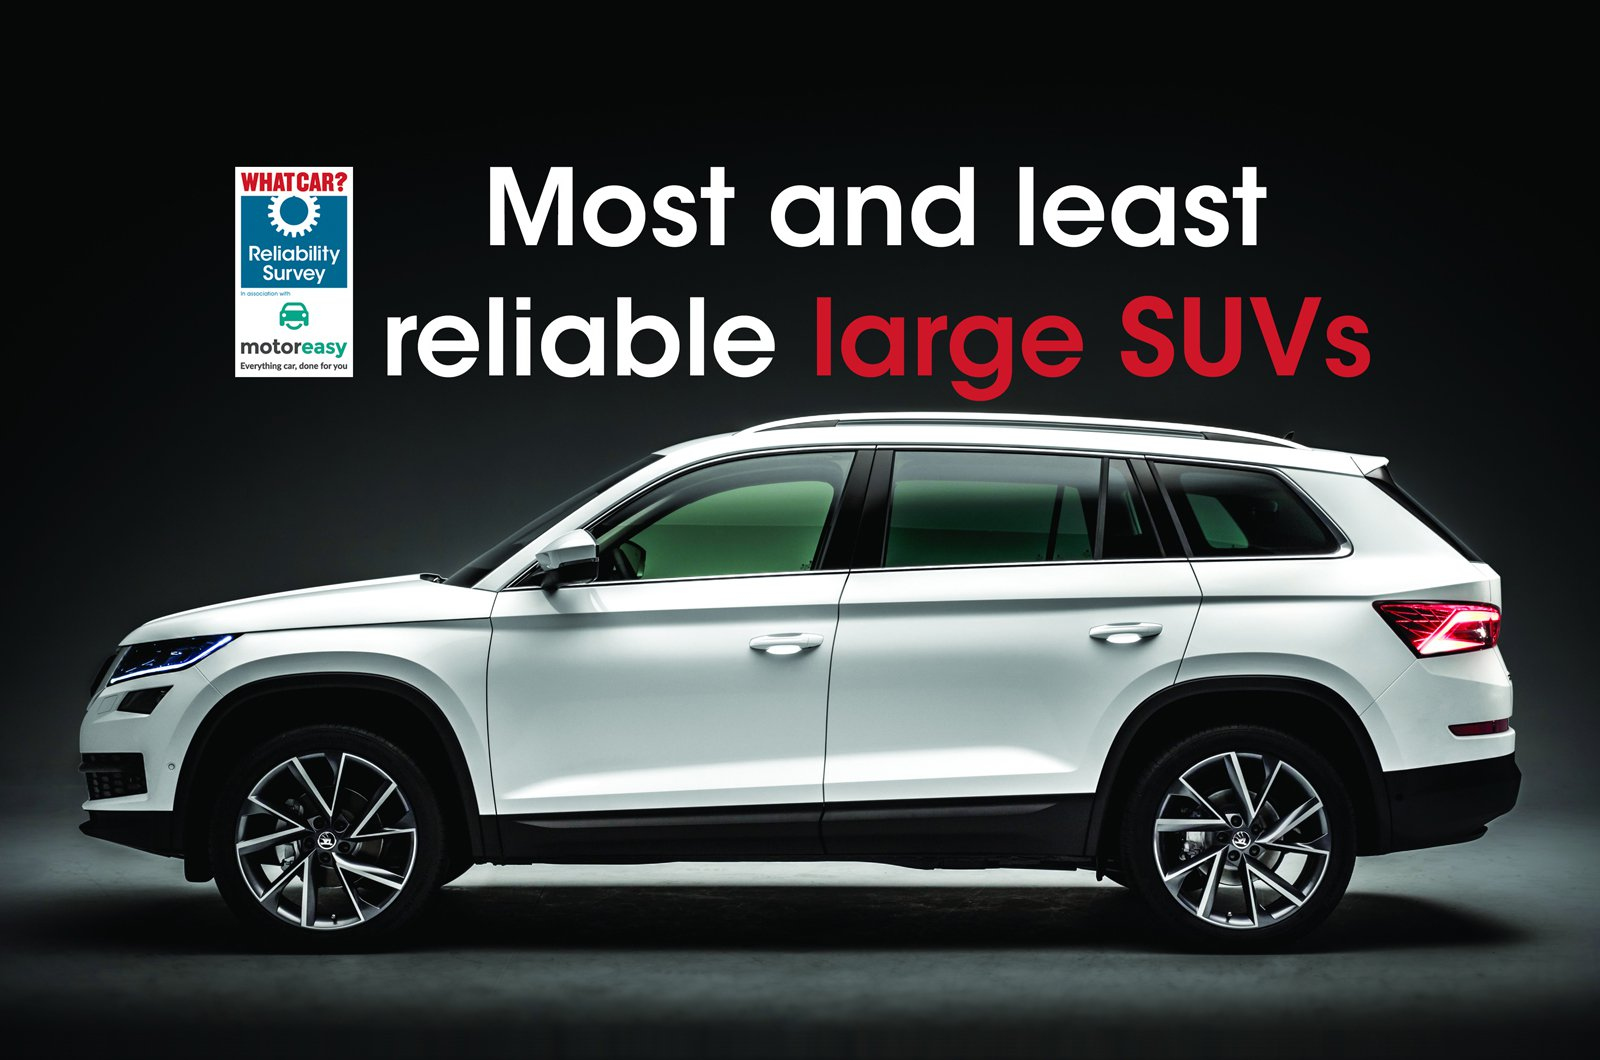 Most and least reliable large SUVs